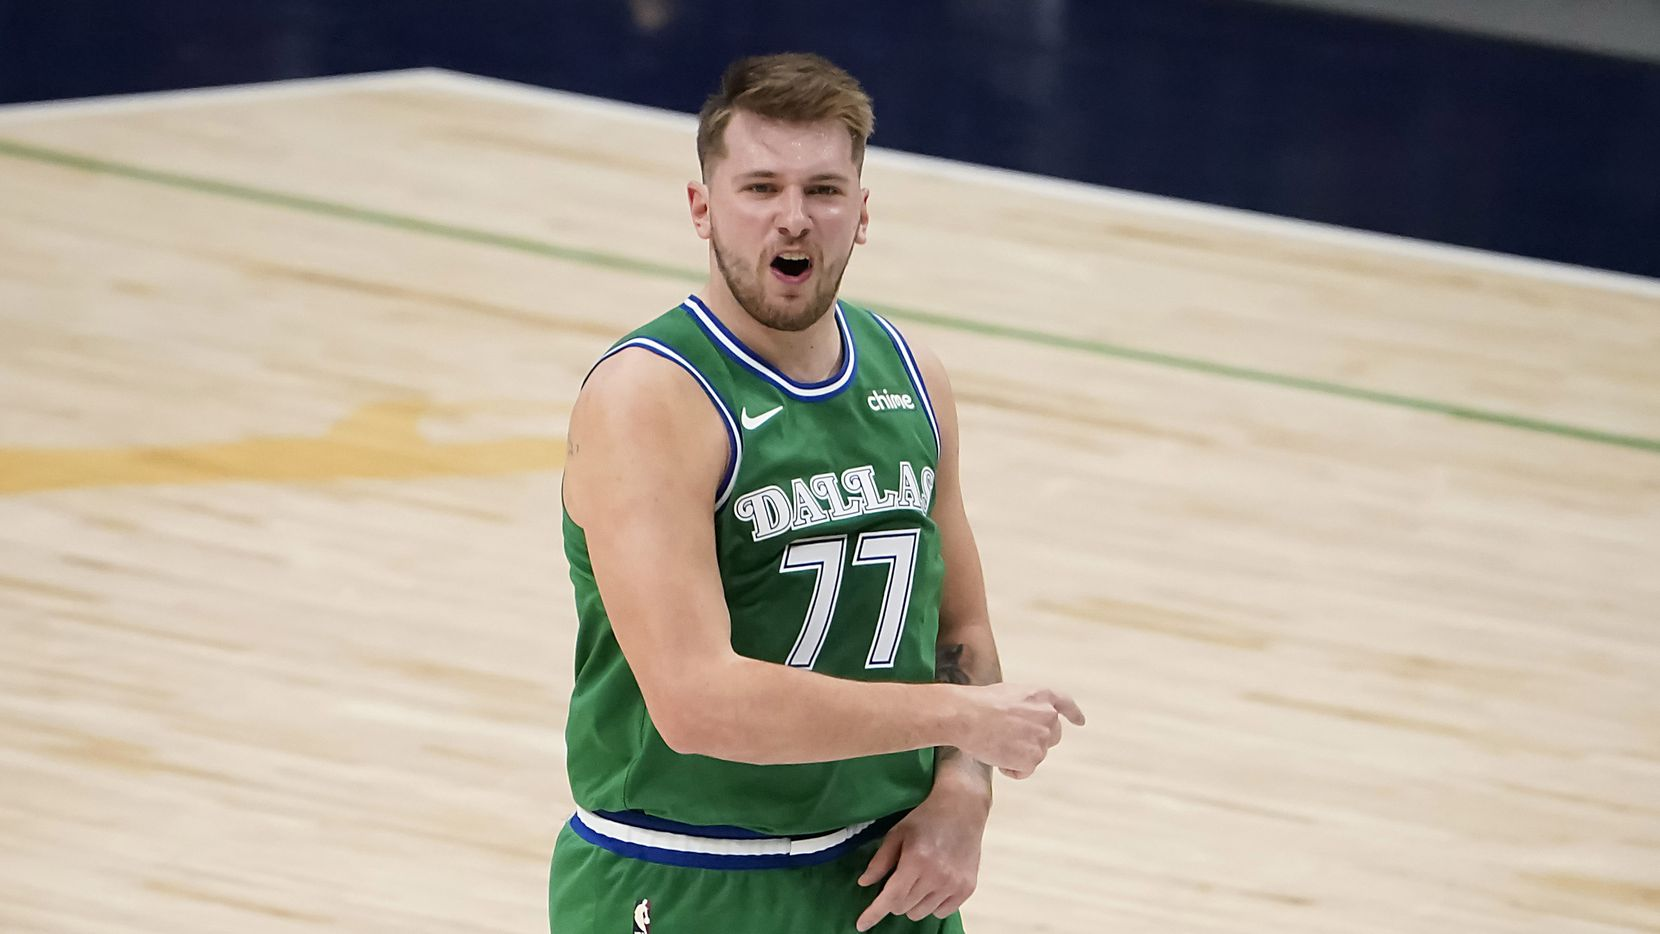 Dallas Mavericks guard Luka Doncic (77) celebrates after hitting a 3-pointer during the during the second half of an NBA basketball game against the LA Clippers at American Airlines Center on Wednesday, March 17, 2021, in Dallas.